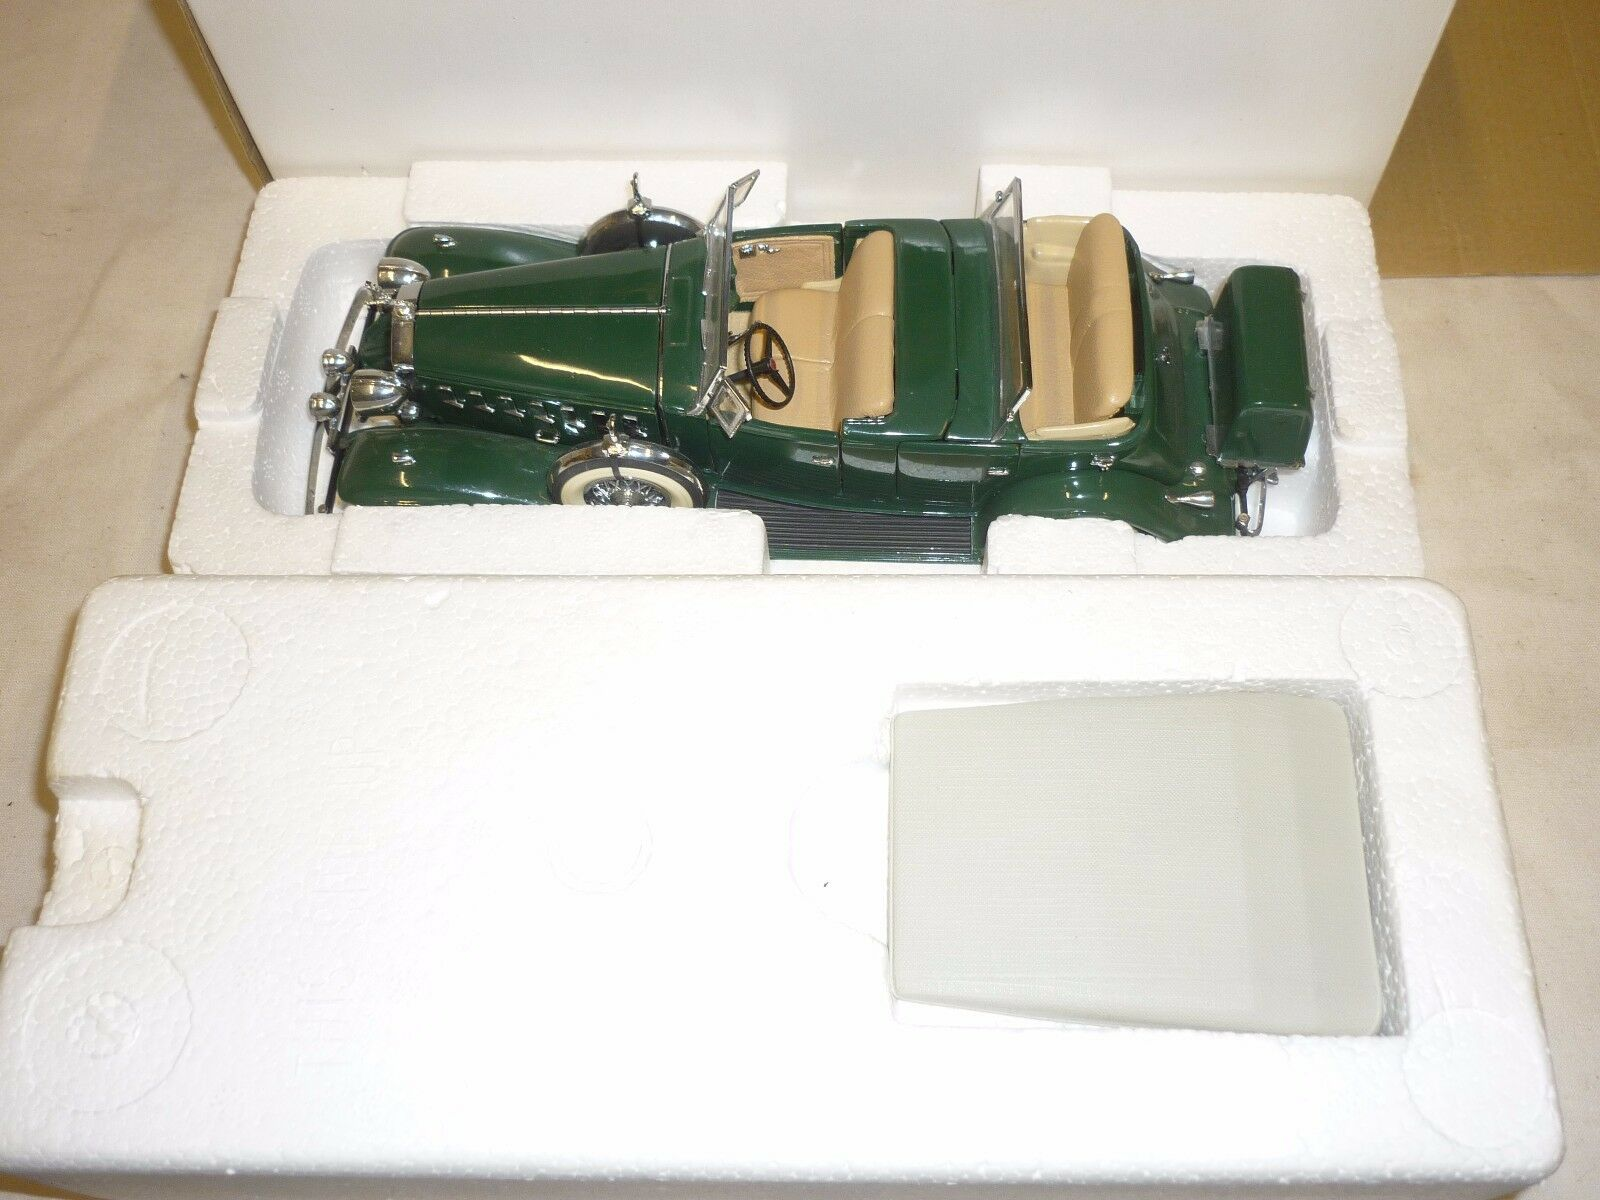 Danbury mint  1932 Cadillac V16 Sports Phaeton, no paperwork,  Boxed,